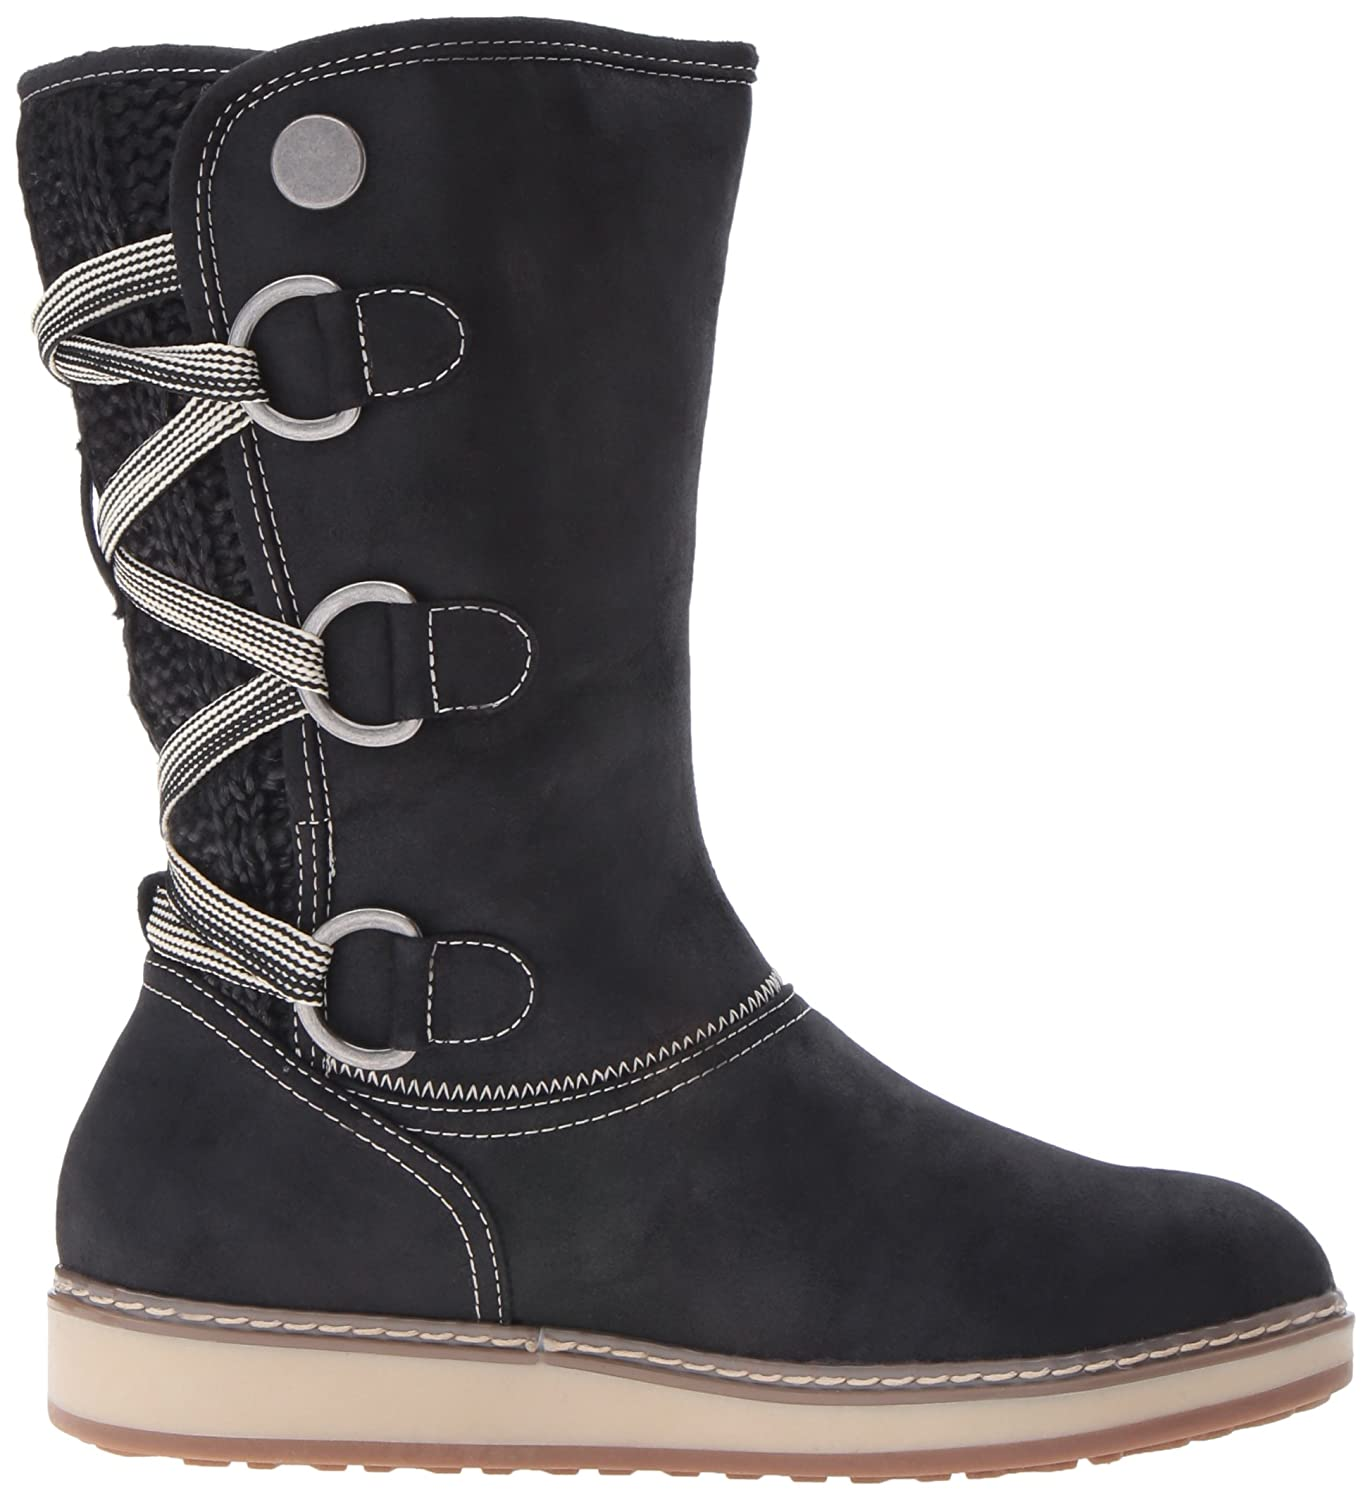 WHITE MOUNTAIN Women's Tivia Snow Boot B01DS40NFQ 6 B(M) US|Black